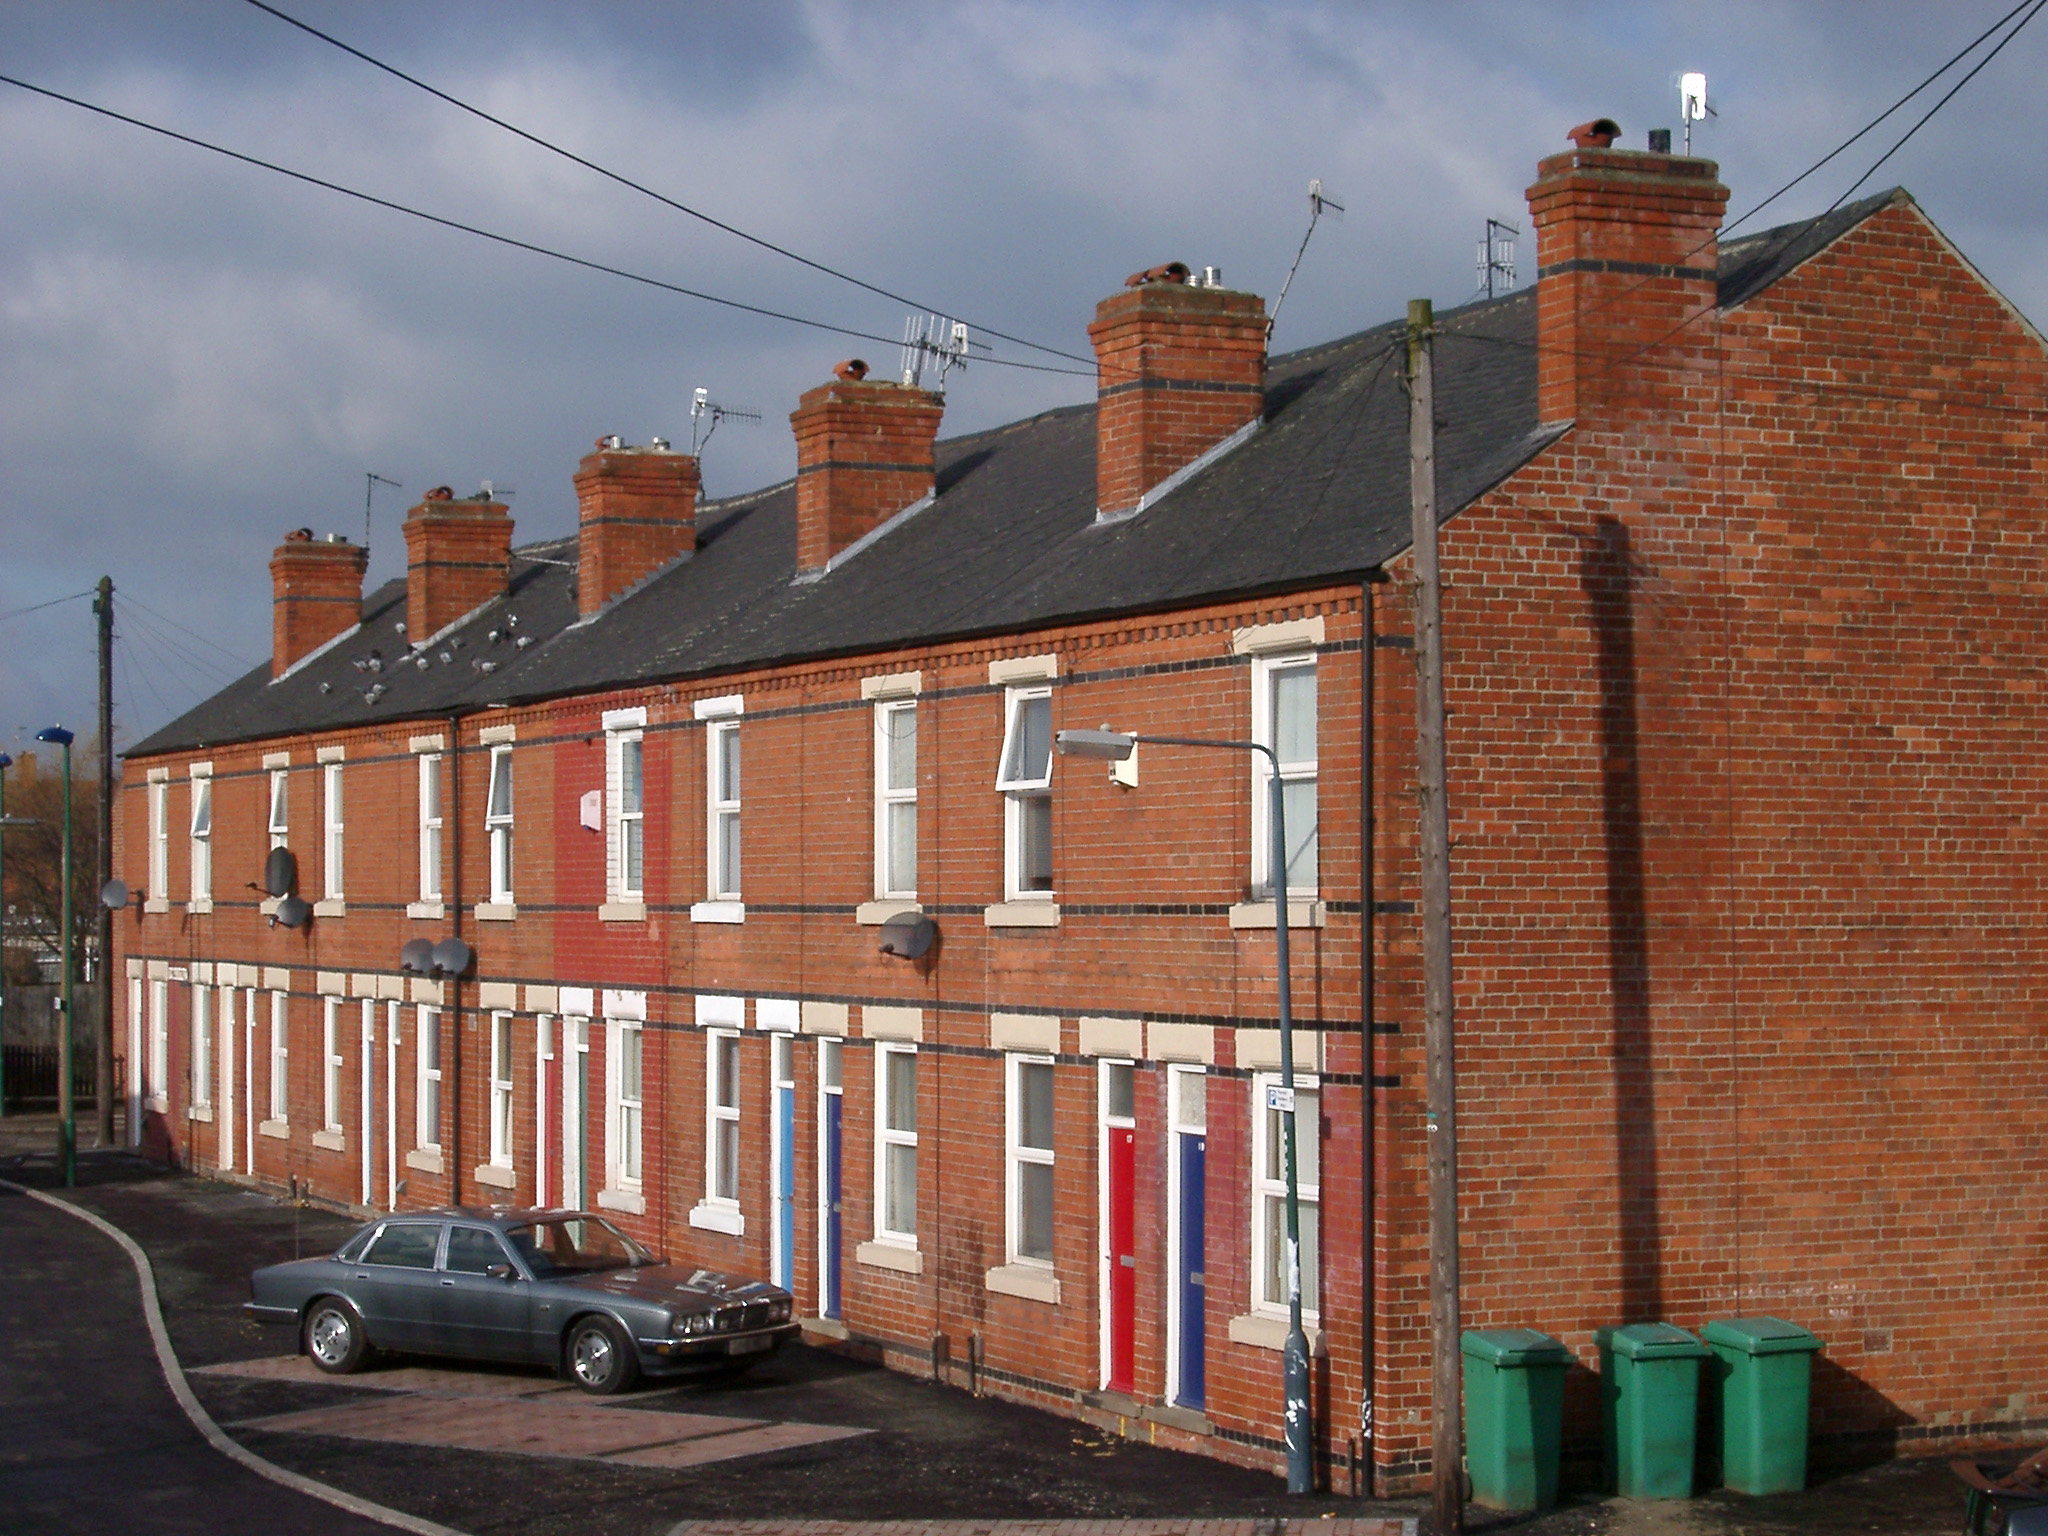 Free stock photo of red brick terraced houses for Terrace of the house